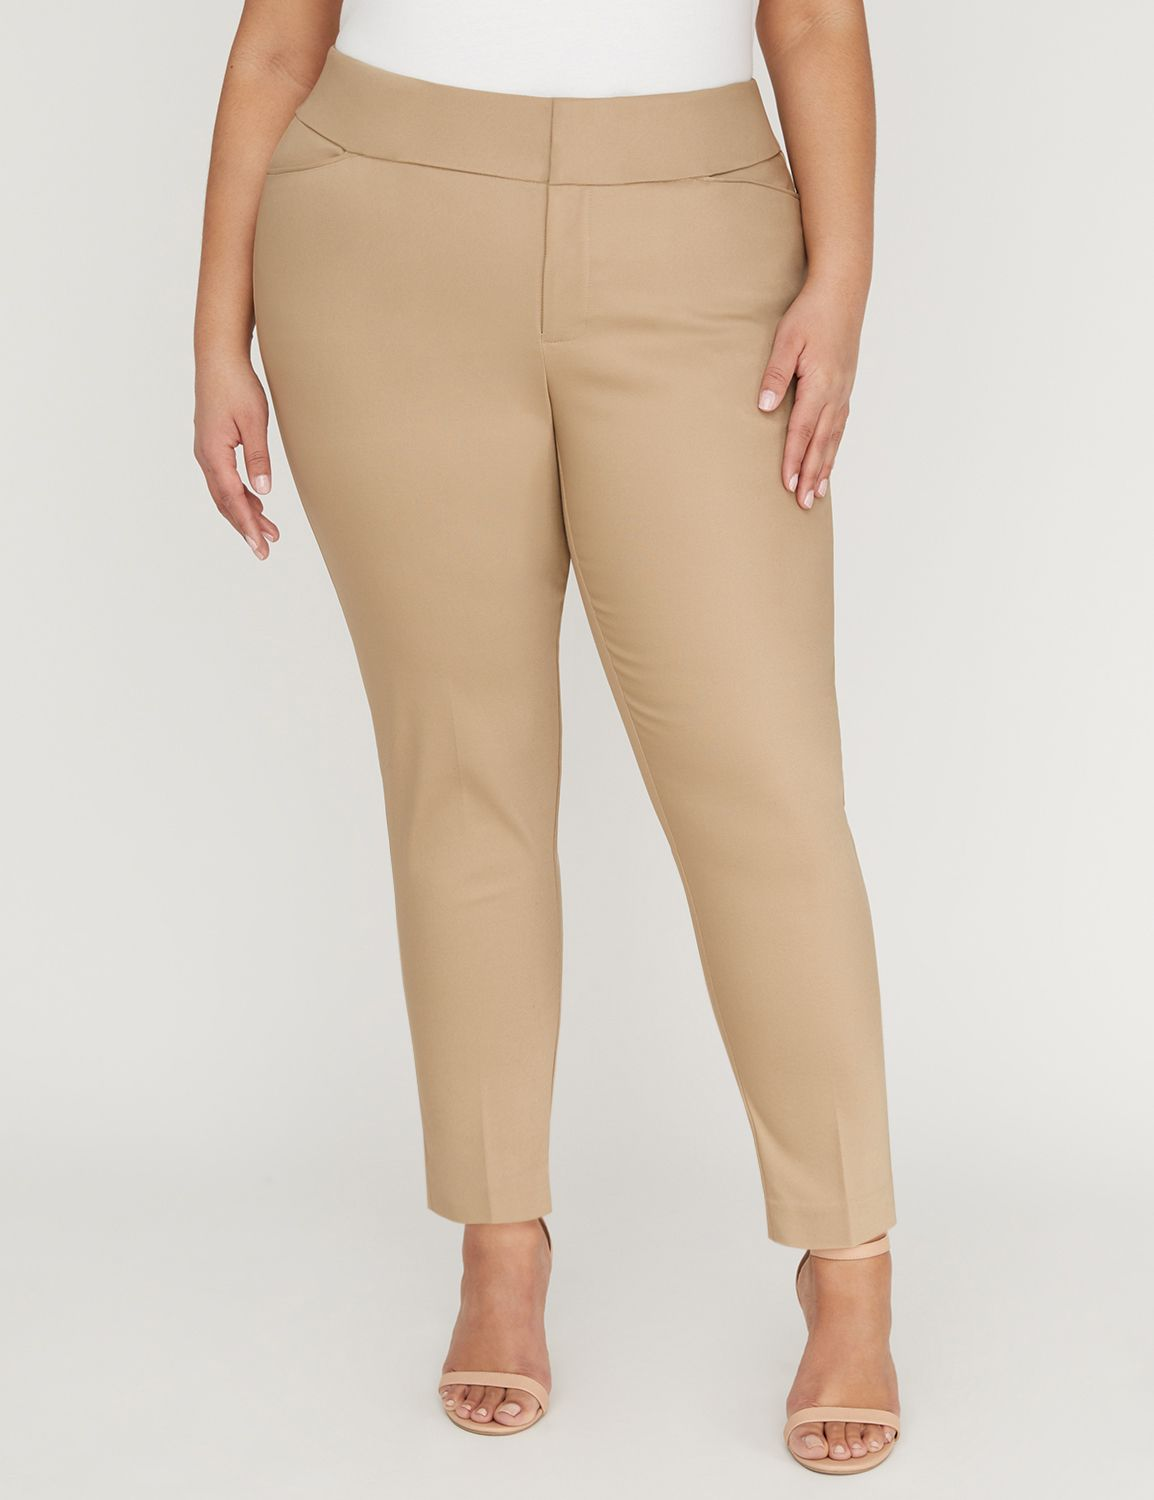 Updated Modern Stretch Ankle Pant 1087775 MODERN STRETCH WIDE WAISTBA MP-300097625